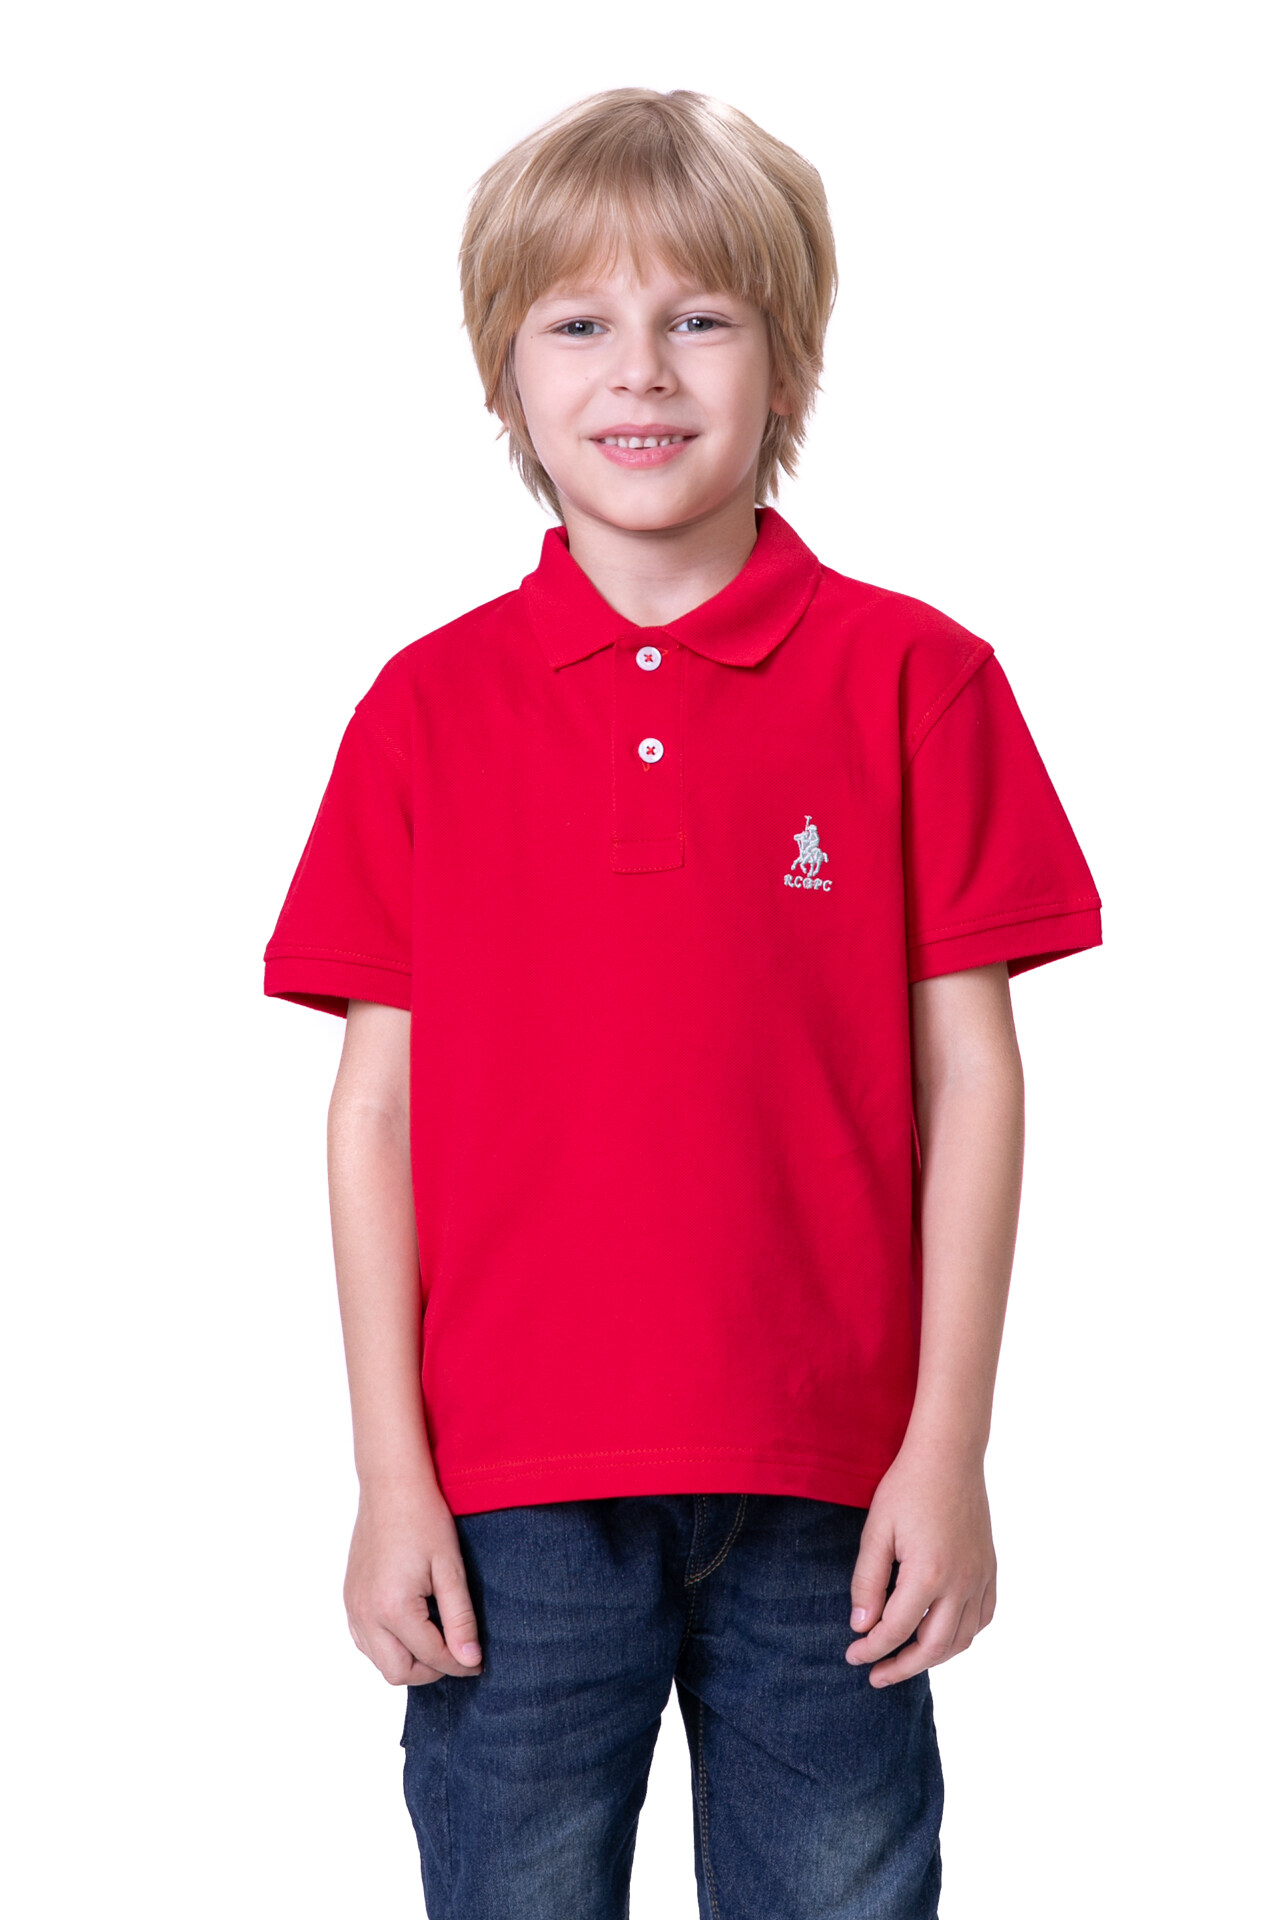 RCB POLO CLUB KIDS POLO TEE SOLIDRBTS10558